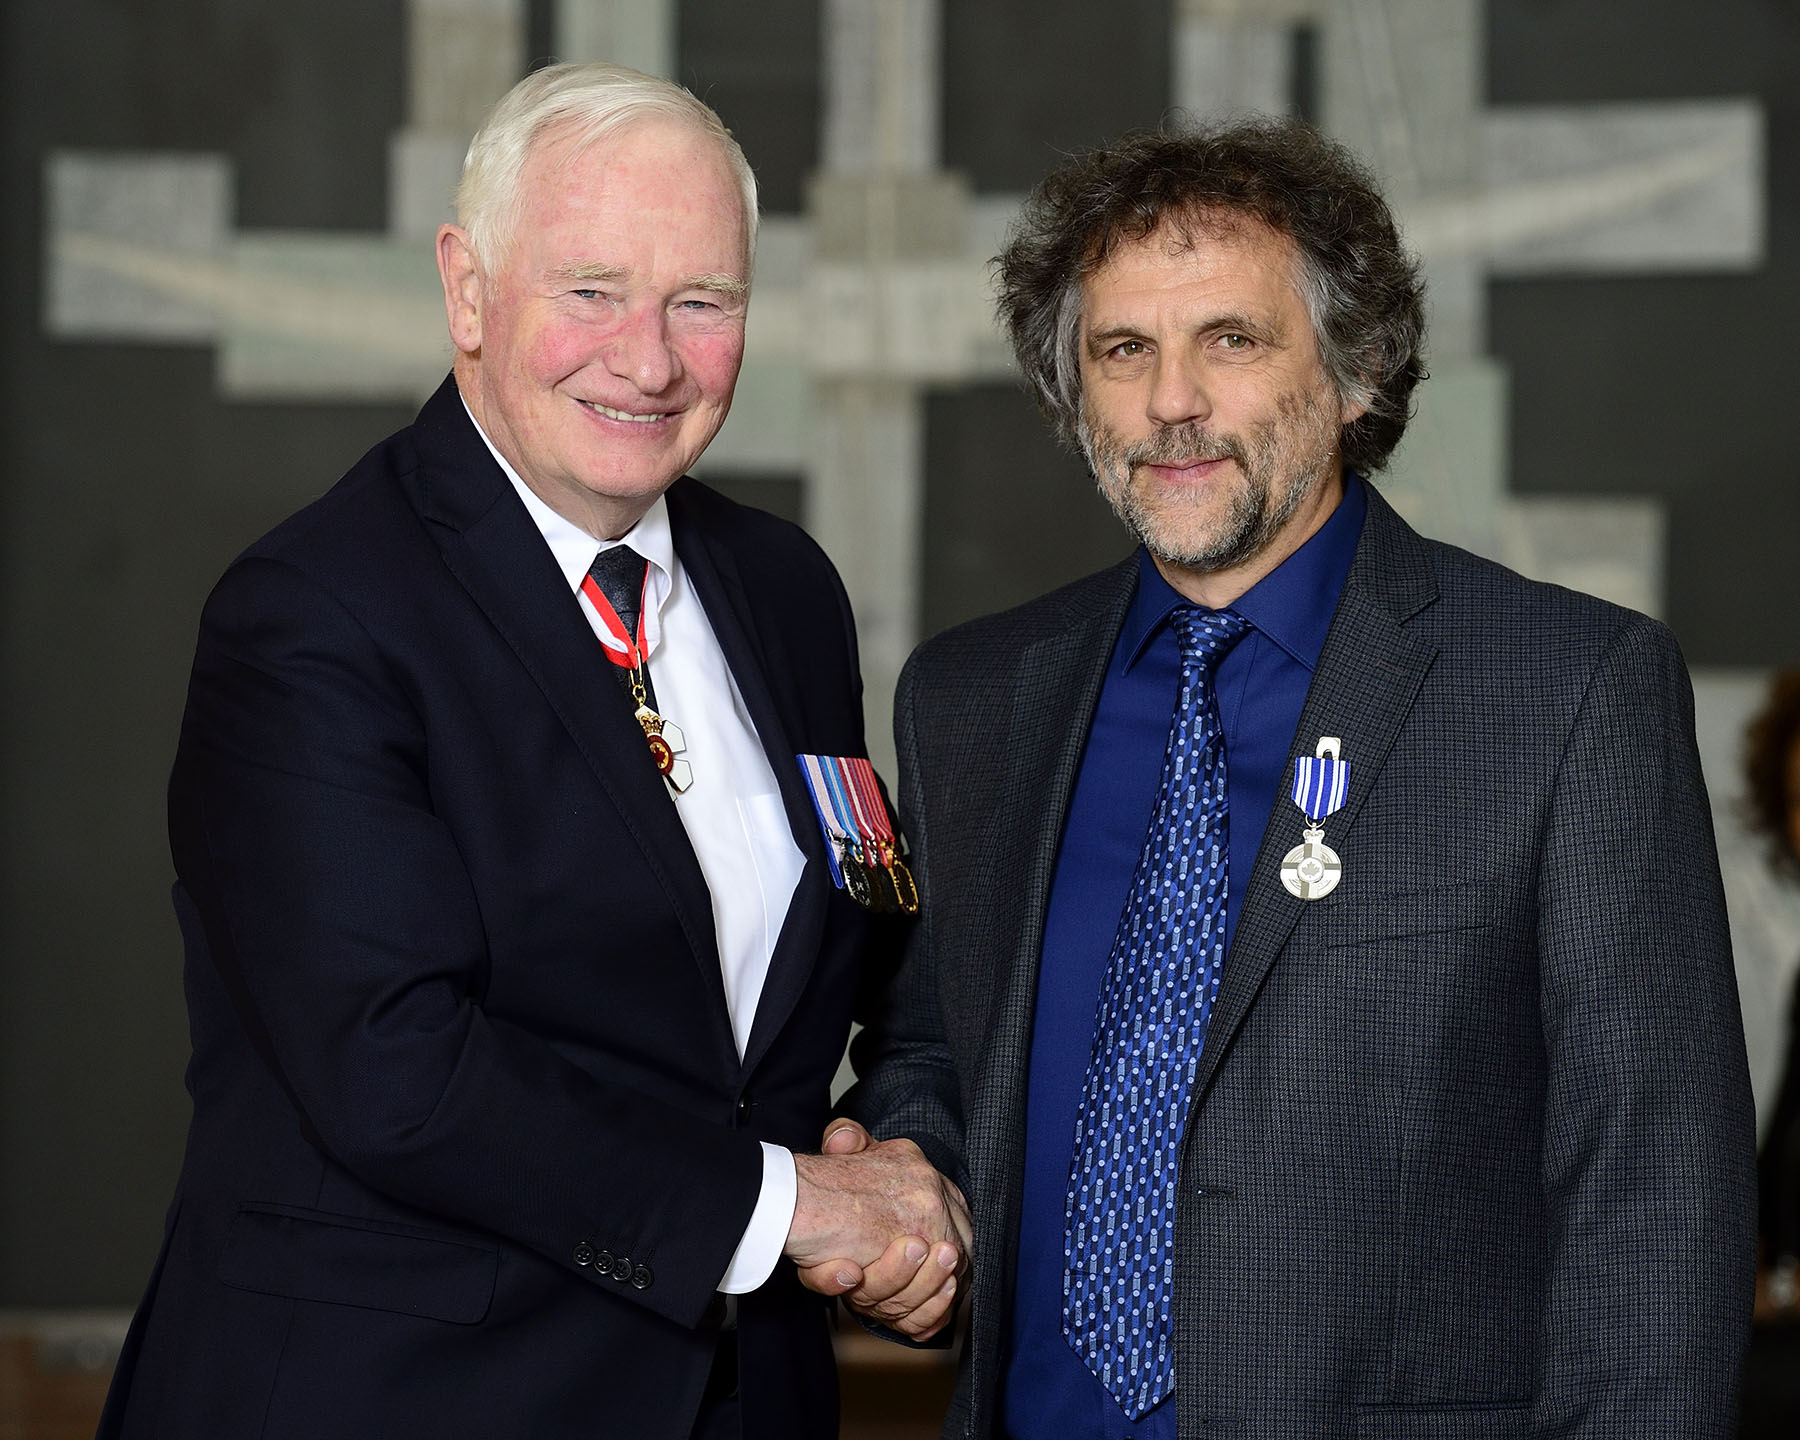 His Excellency presented Philippe Gélinas with a Meritorious Service Medal (Civil Division) for founding l'Atelier du Conte en Musique et en Images Inc. to raise awareness of how medieval music has shaped Quebec's culture. History comes alive through concerts and workshops in communities across Canada, as audiences see, hear and sometimes play the cittern, dulcimer, hurdy gurdy, crumhorn, sackbut and lute. These are just a few of the more than 30 replicas of traditional instruments that the group features through its distinctive storytelling.